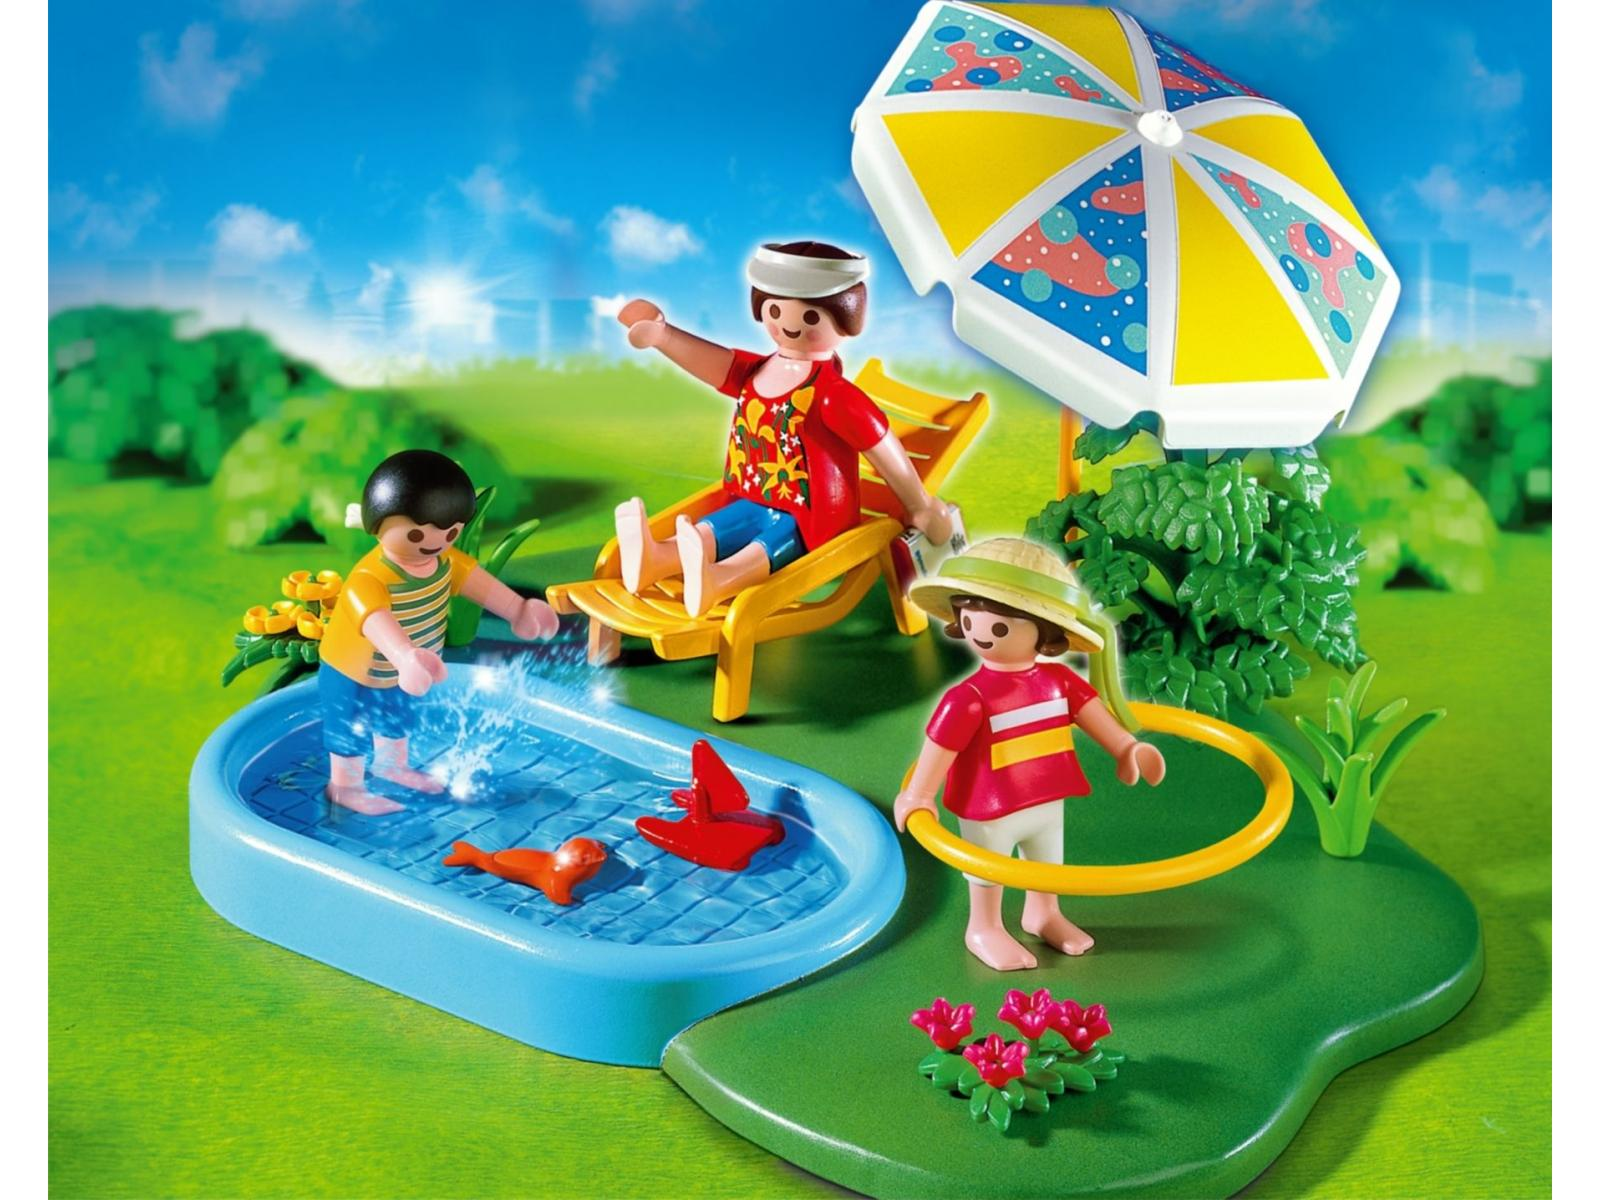 Playmobil compact set famille avec piscine 4140 for Piscine playmobil